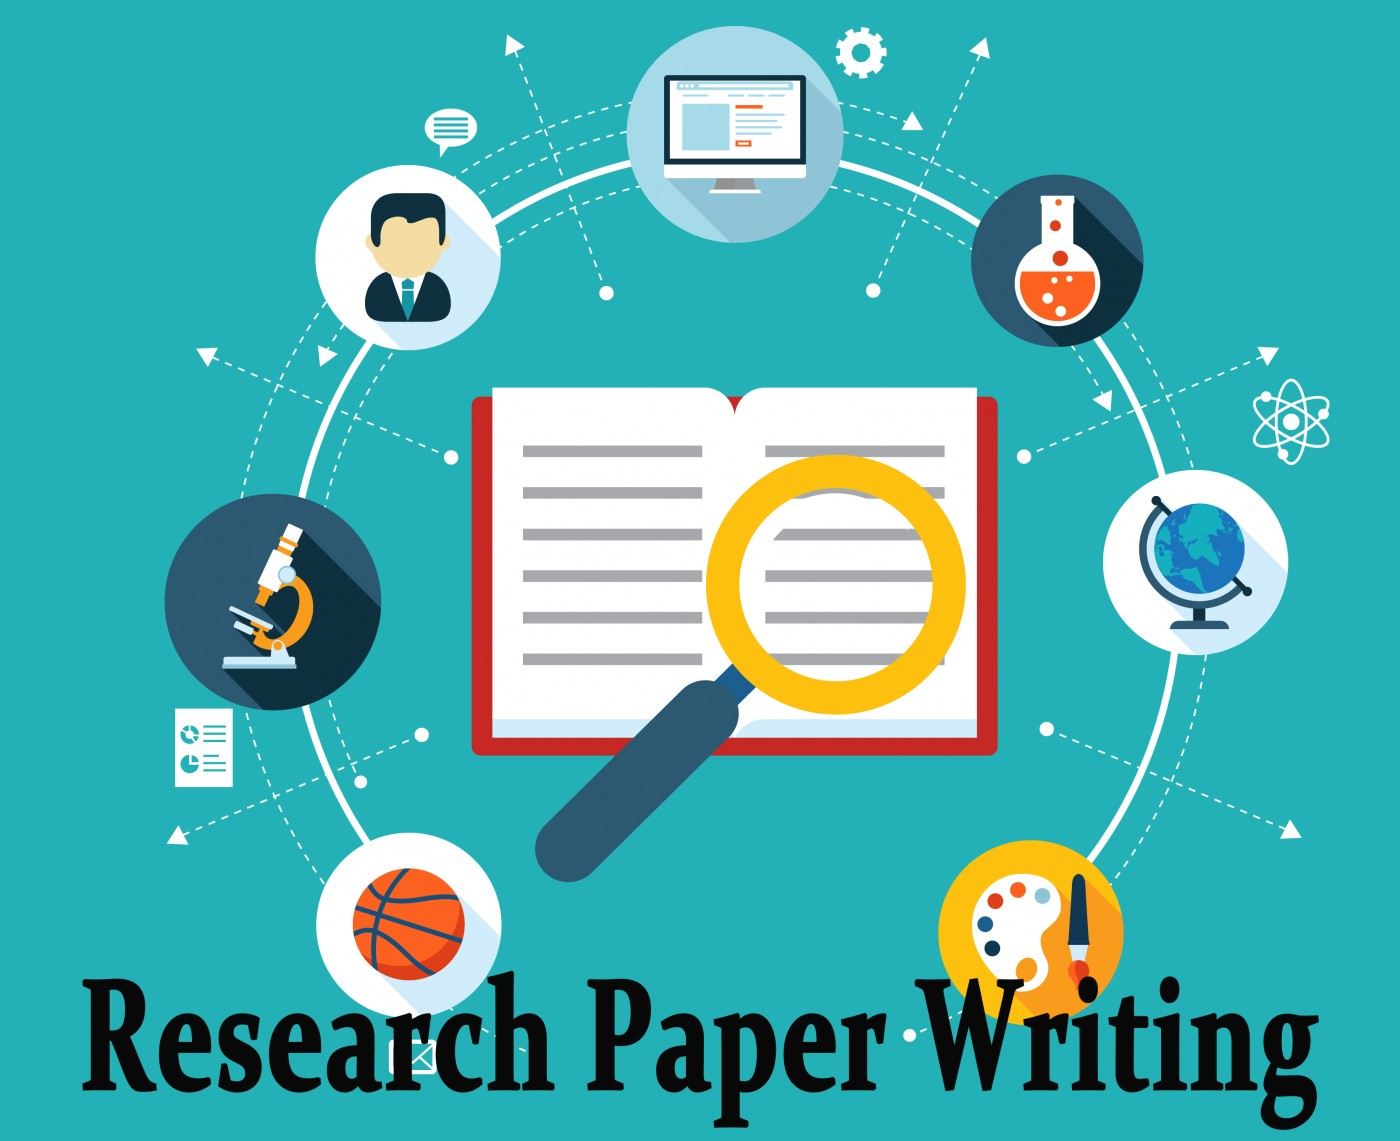 008 Writing Of Research Paper 503 Effective Fascinating Great Pdf Harvard Style Sample 1400